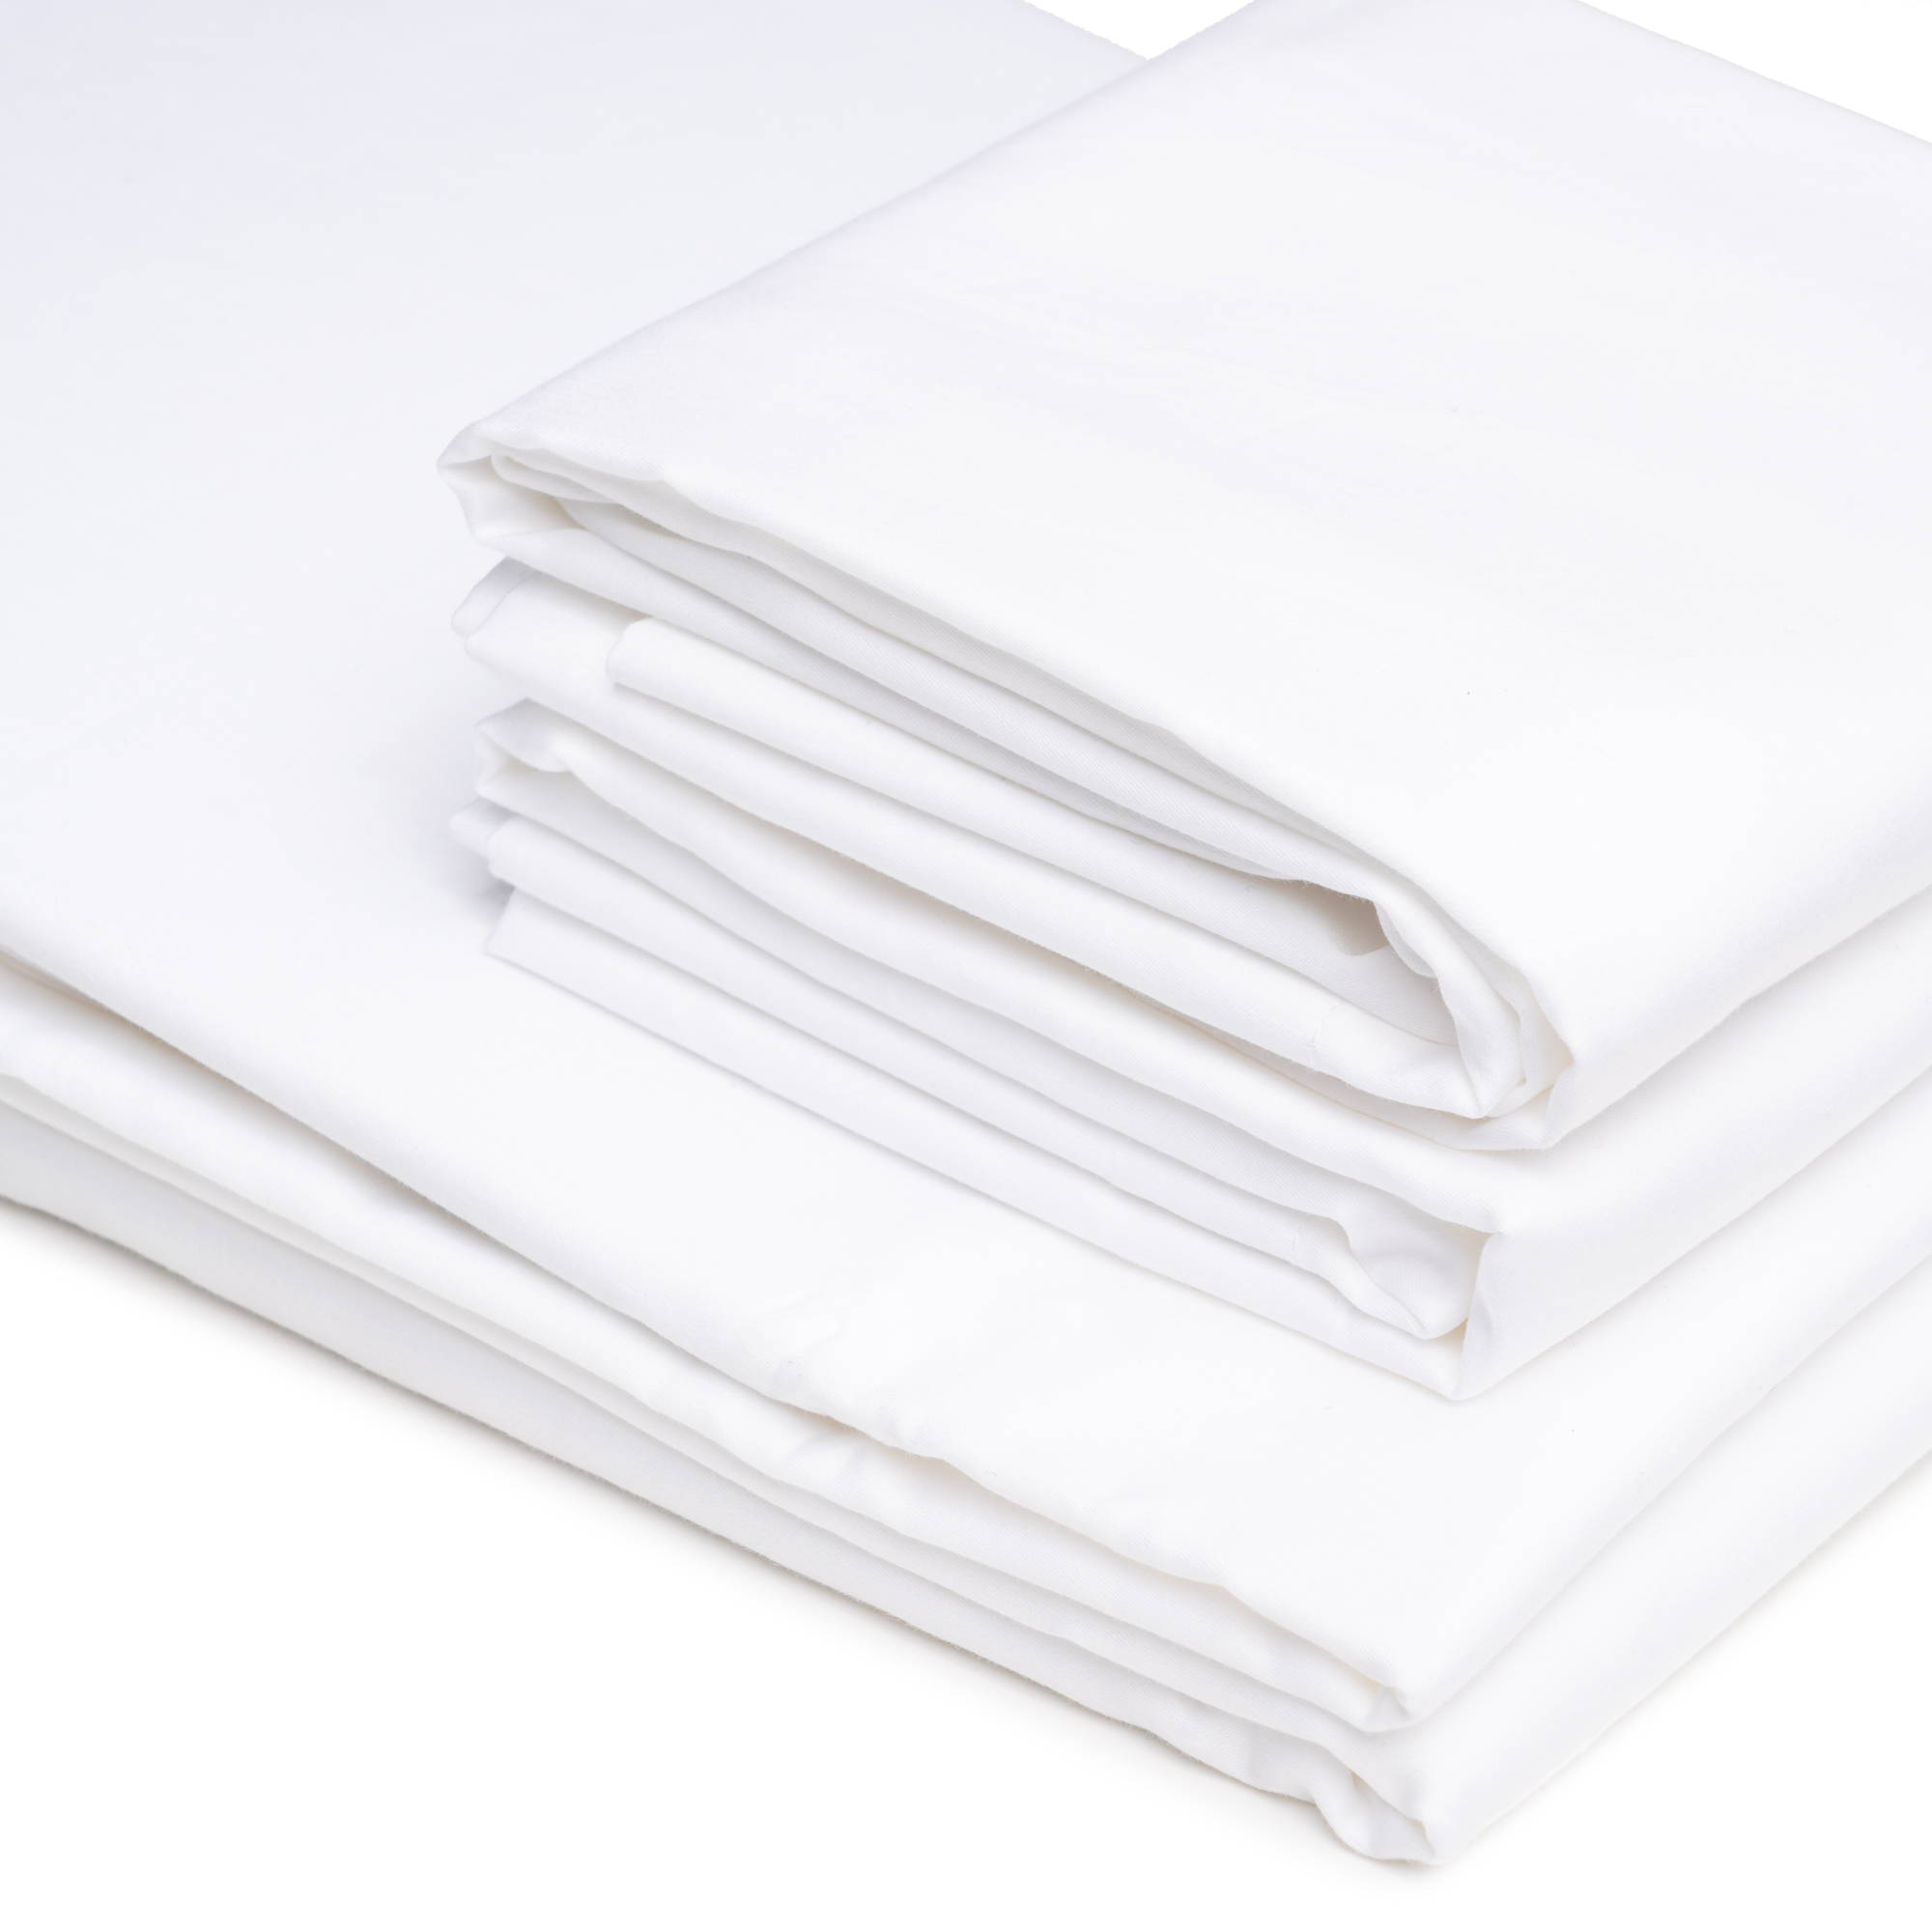 DOPLNOK-Organic-Cotton-Bed-Sheets-PEARL-Sateen-Weave-Sheets